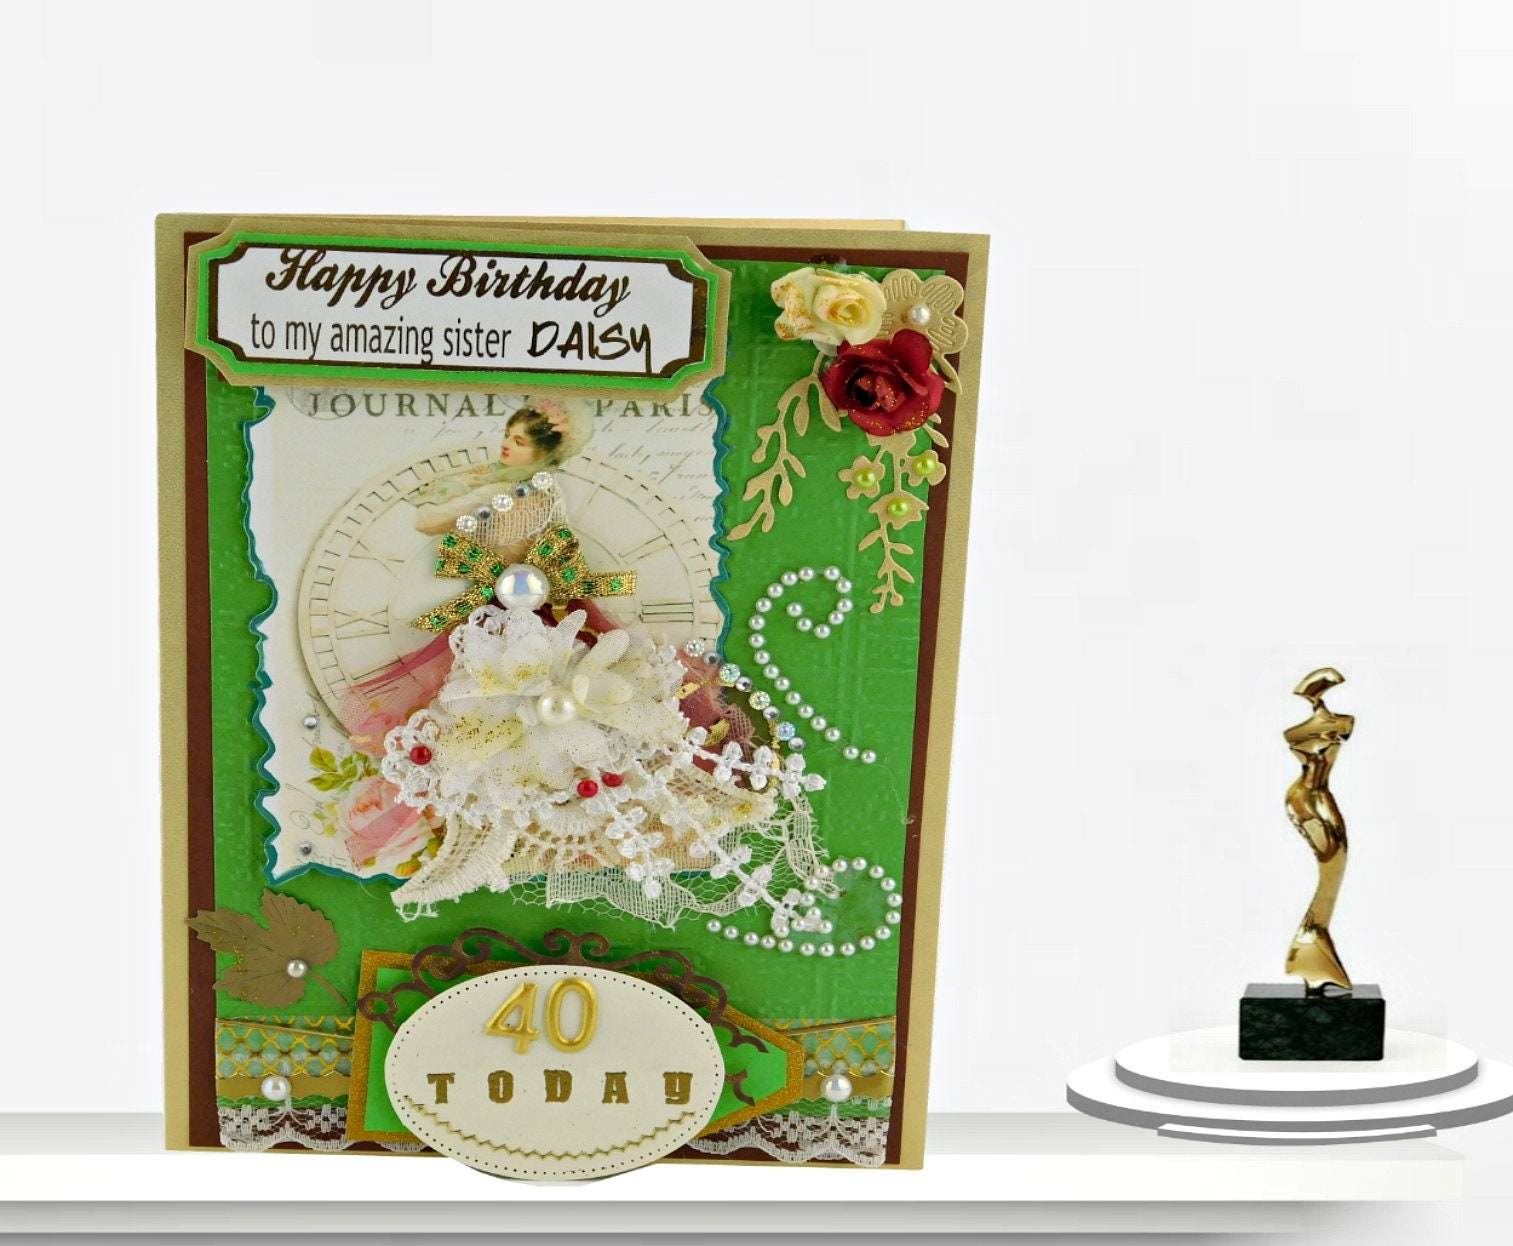 Personalized Birthday Card Custom Grass Green Vintage Style Multilingual 40th For Wife Mom Daughter Sister Boxed